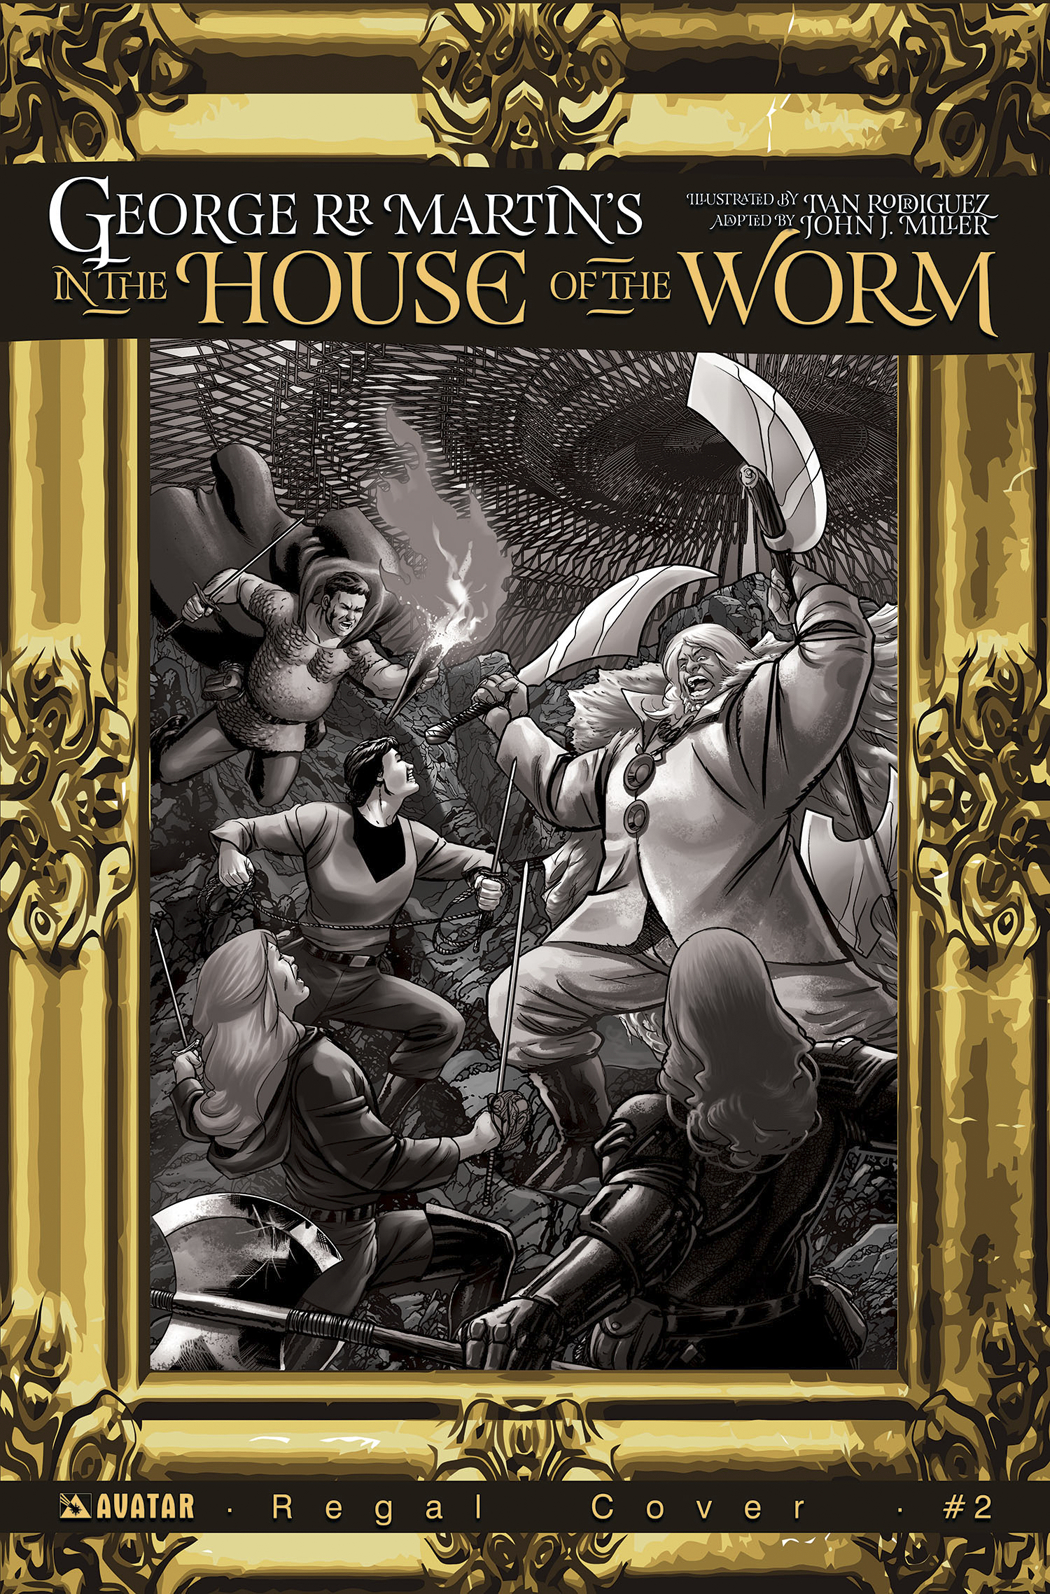 GEORGE RR MARTIN IN THE HOUSE O/T WORM #2 REGAL INCV CVR